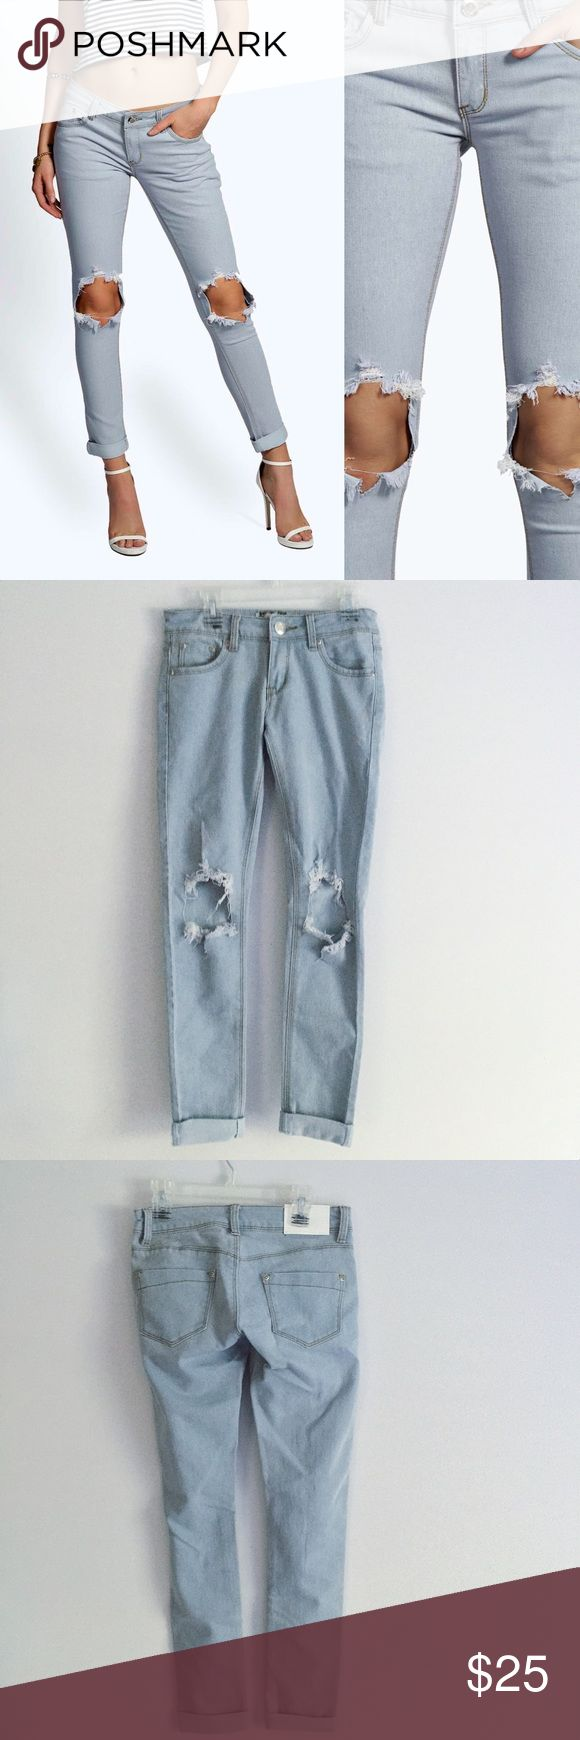 Petite Knee Rip Skinny Jeans NWOT low-rise cuffed skinny jeans in a light wash ripped at the knees. Fit more like a 0 than a 2. Boohoo Jeans Skinny